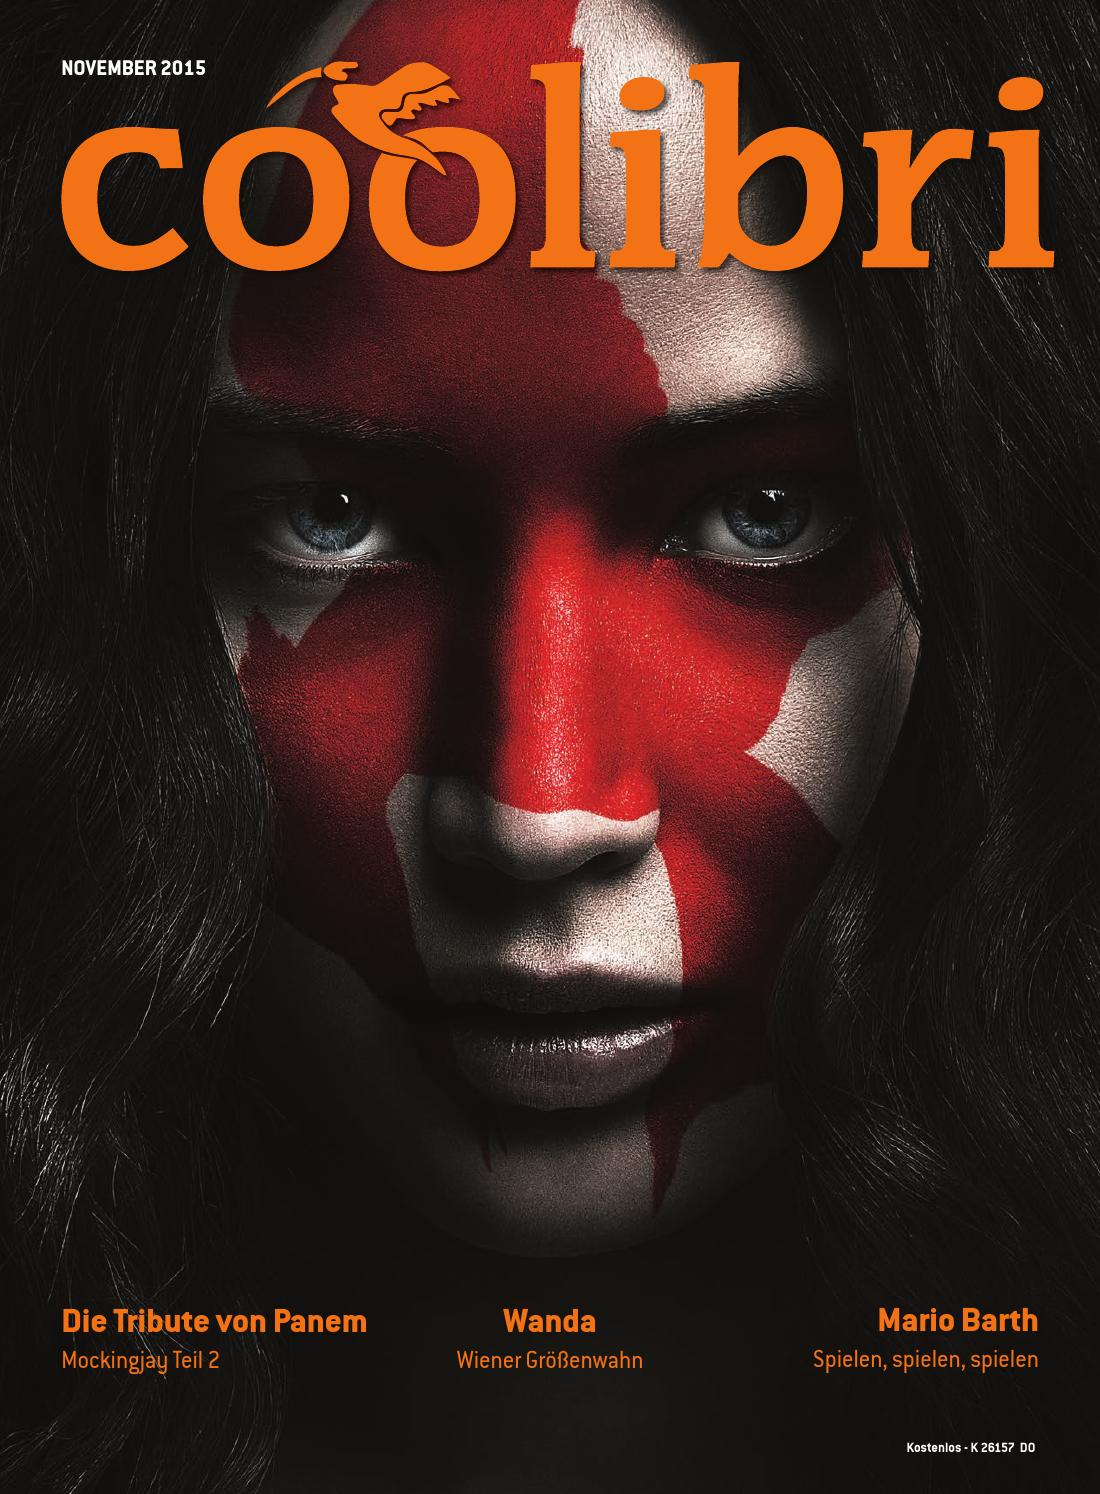 Coolibri Ruhrgebiet Ost November 2015 By Coolibri Issuu